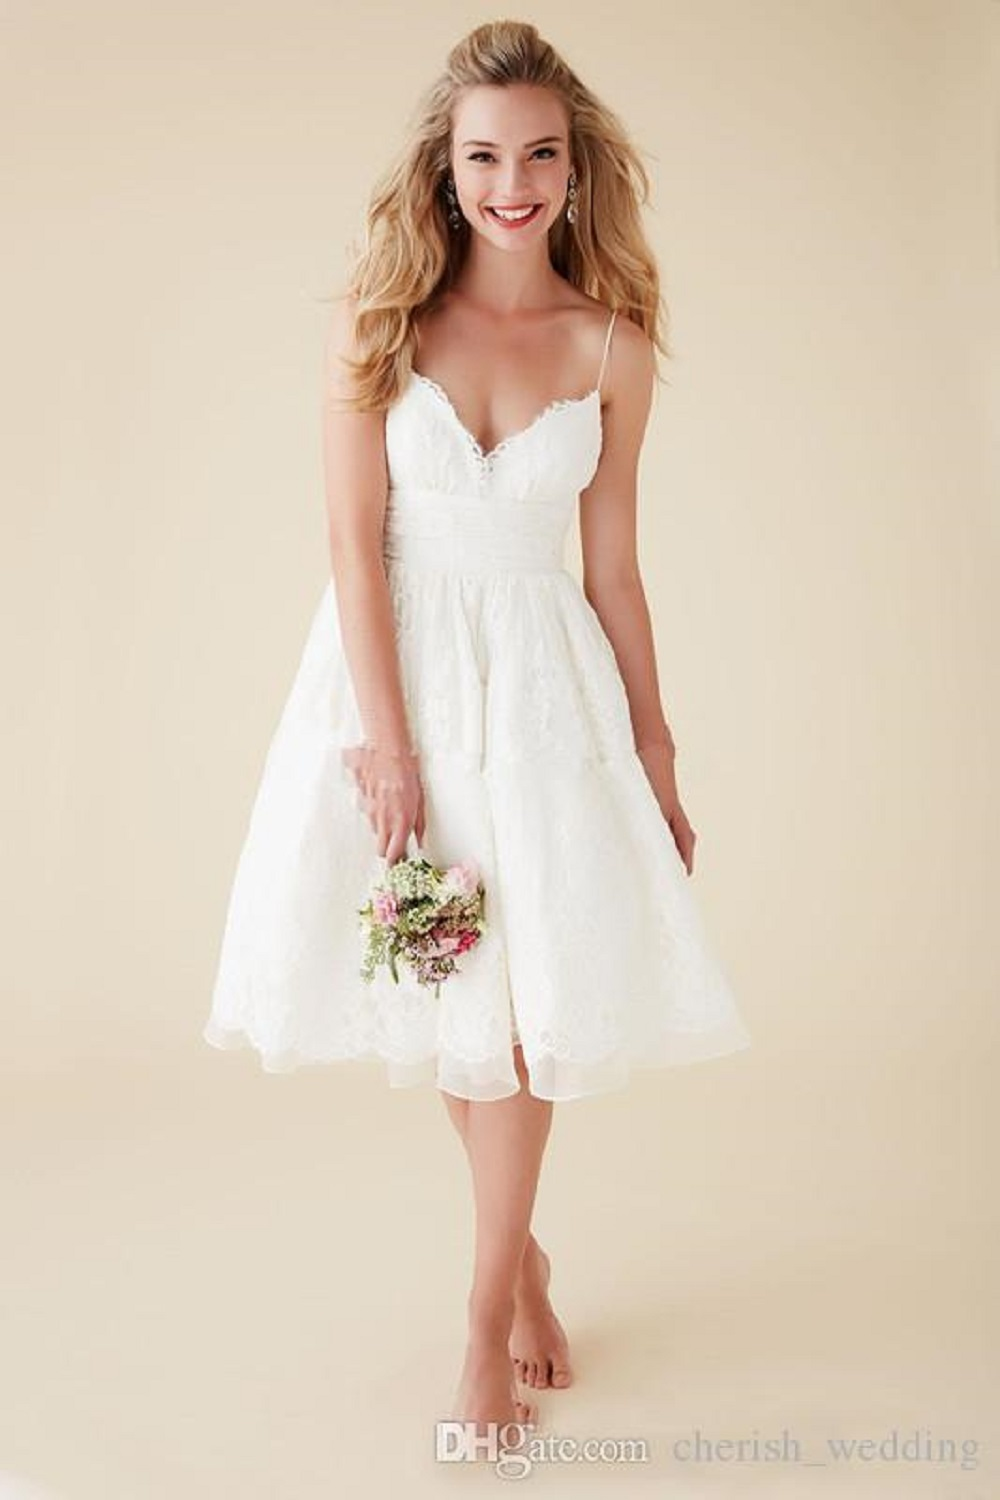 shoulder neckline beach wedding dress